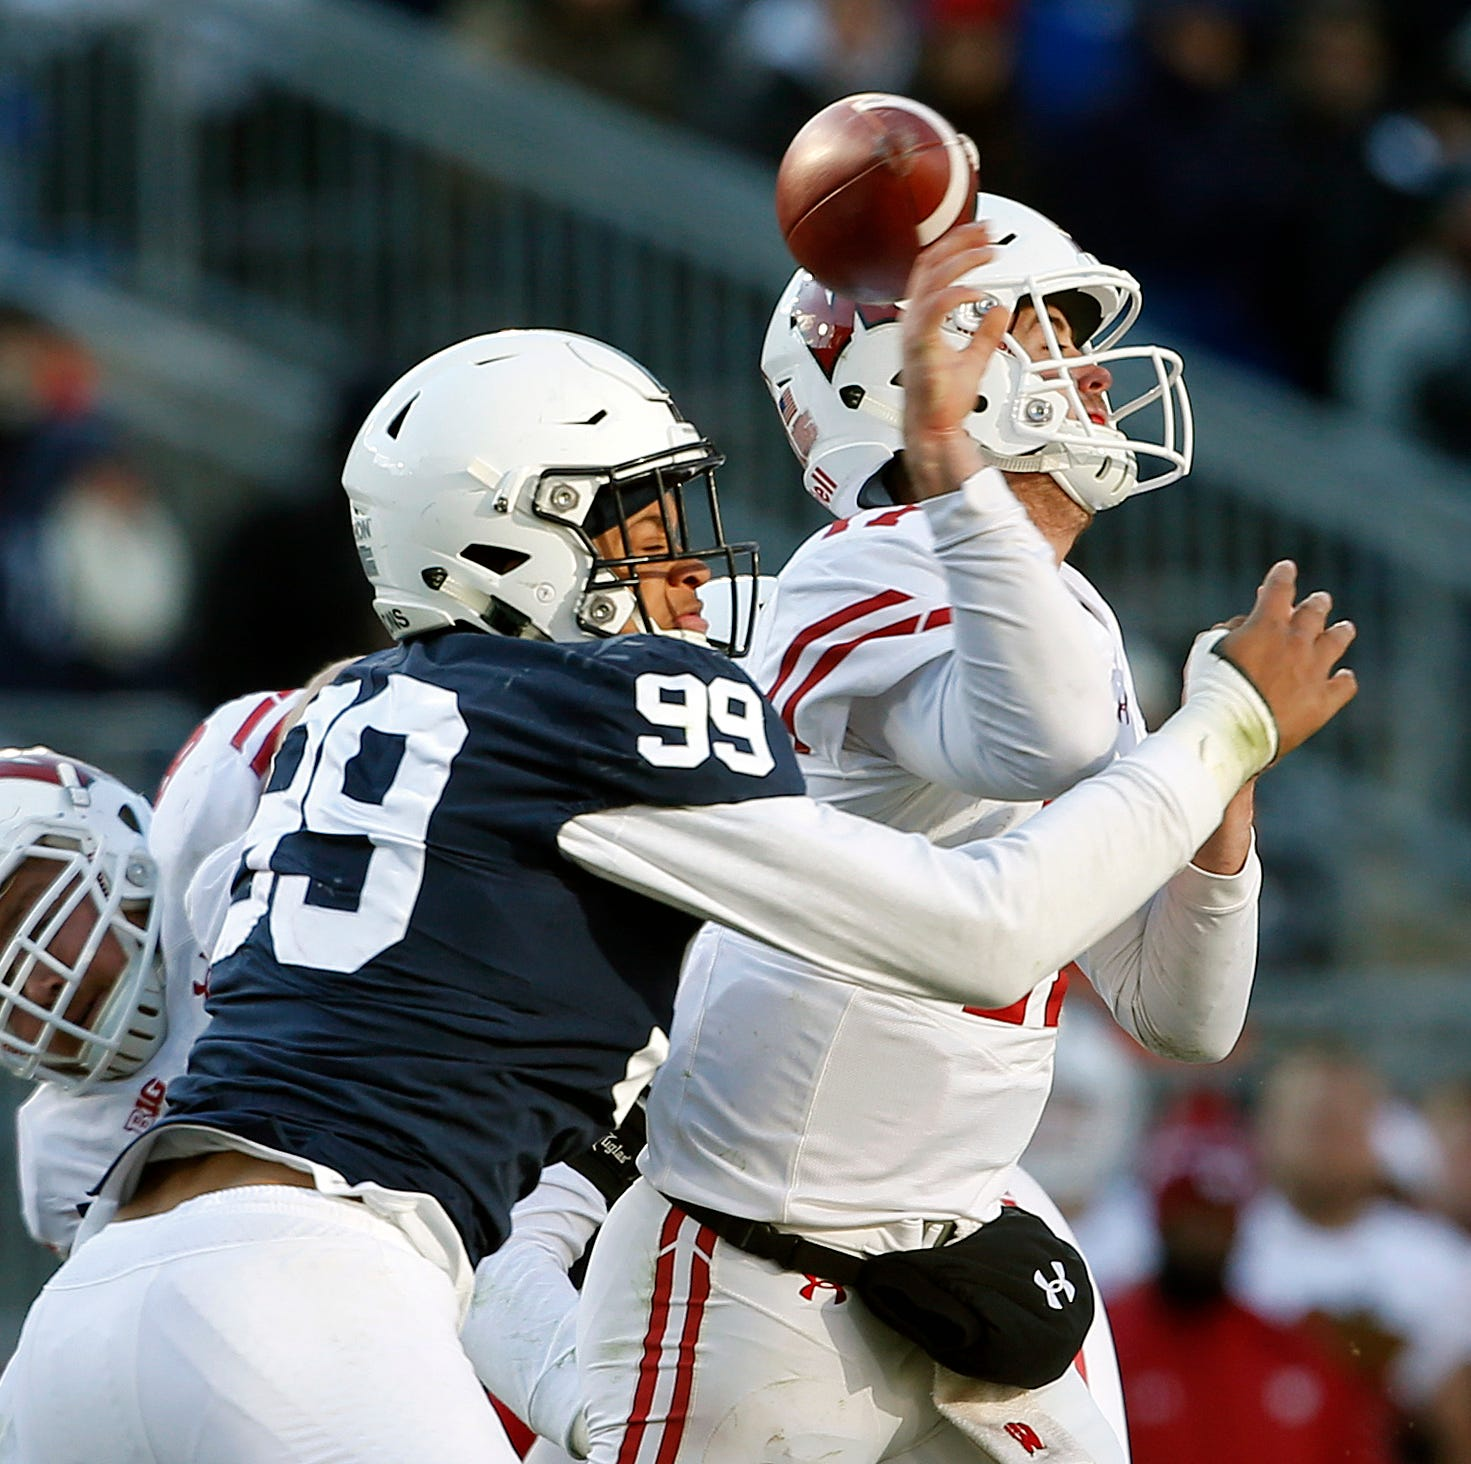 Penn State's unexpected saving grace: A defense that thrives behind DL Robert Windsor